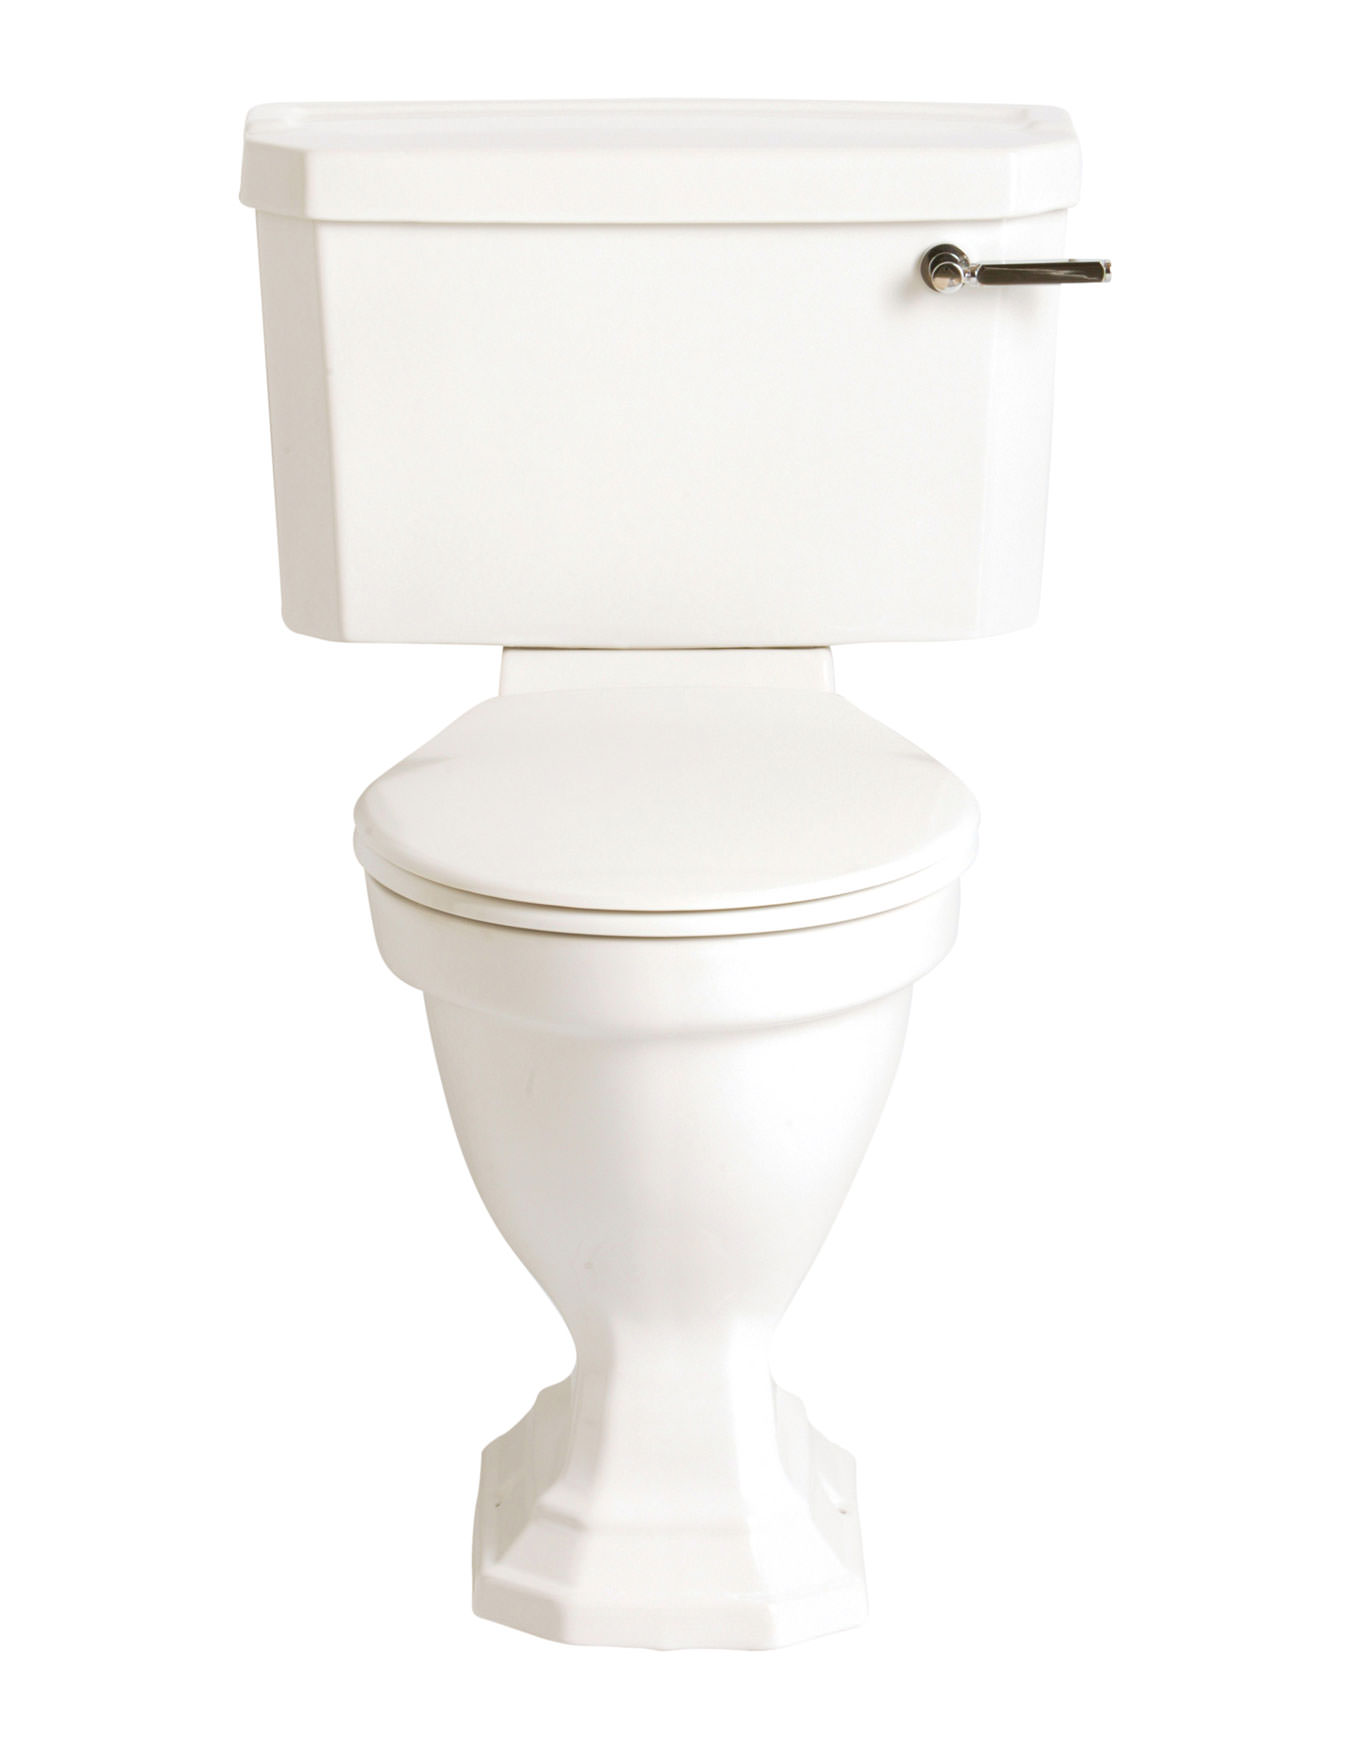 Heritage granley deco comfort height wc and cistern - Deco wc blauw ...